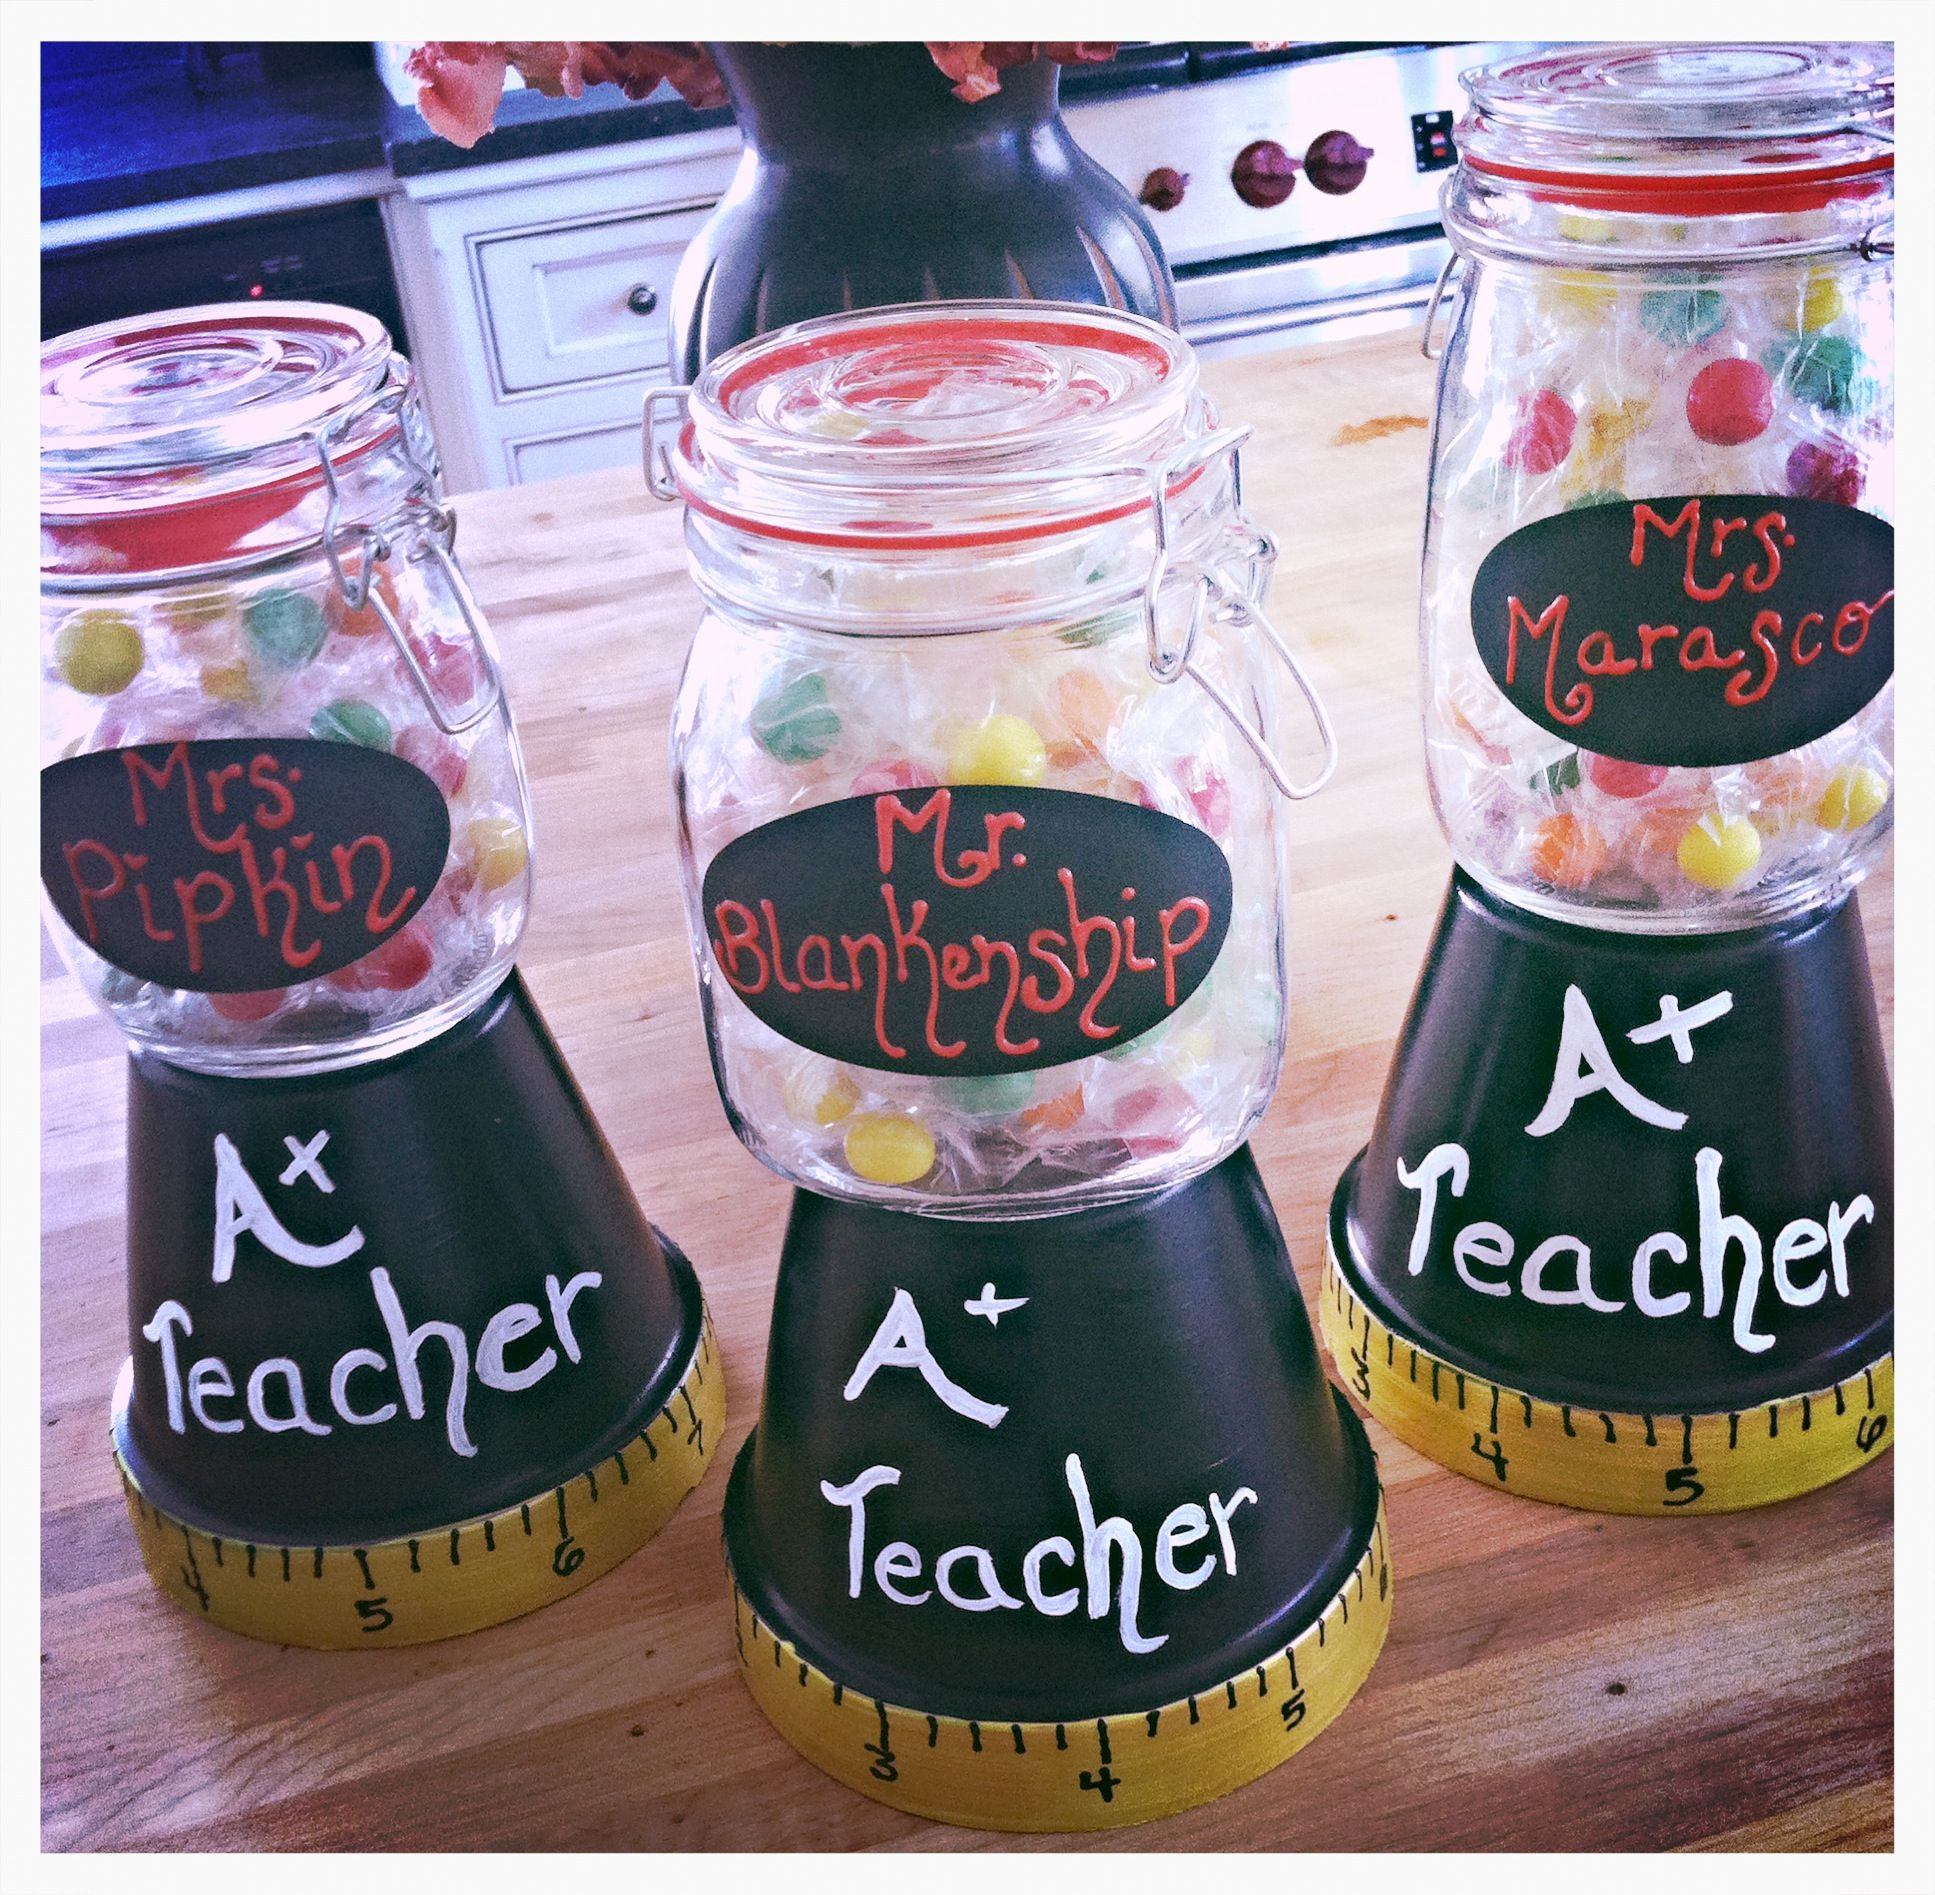 Pin By Rachel Sammons On My Awesome Creations Inspired By Pinterest Home Made Candy Teacher Christmas Gifts Candy Stand